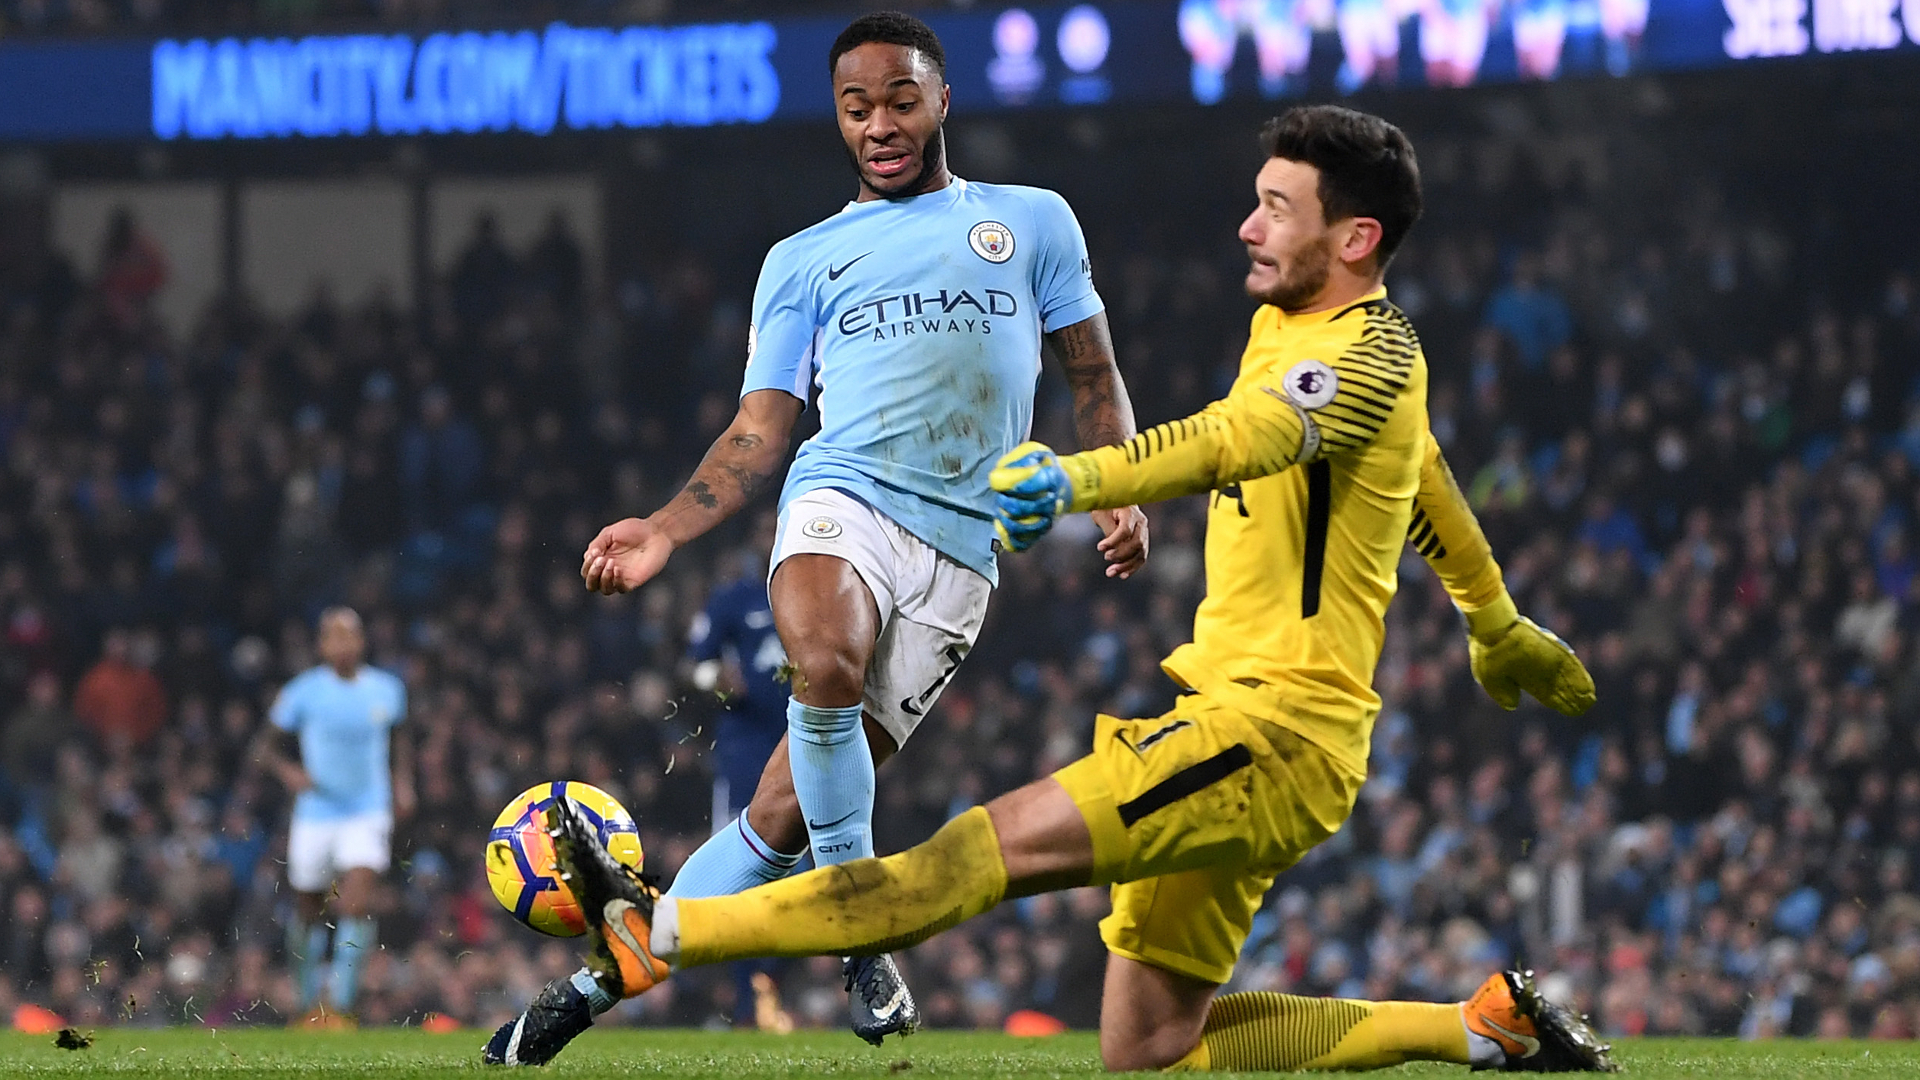 Gundogan cameo sums up why Manchester City are in a league of their own